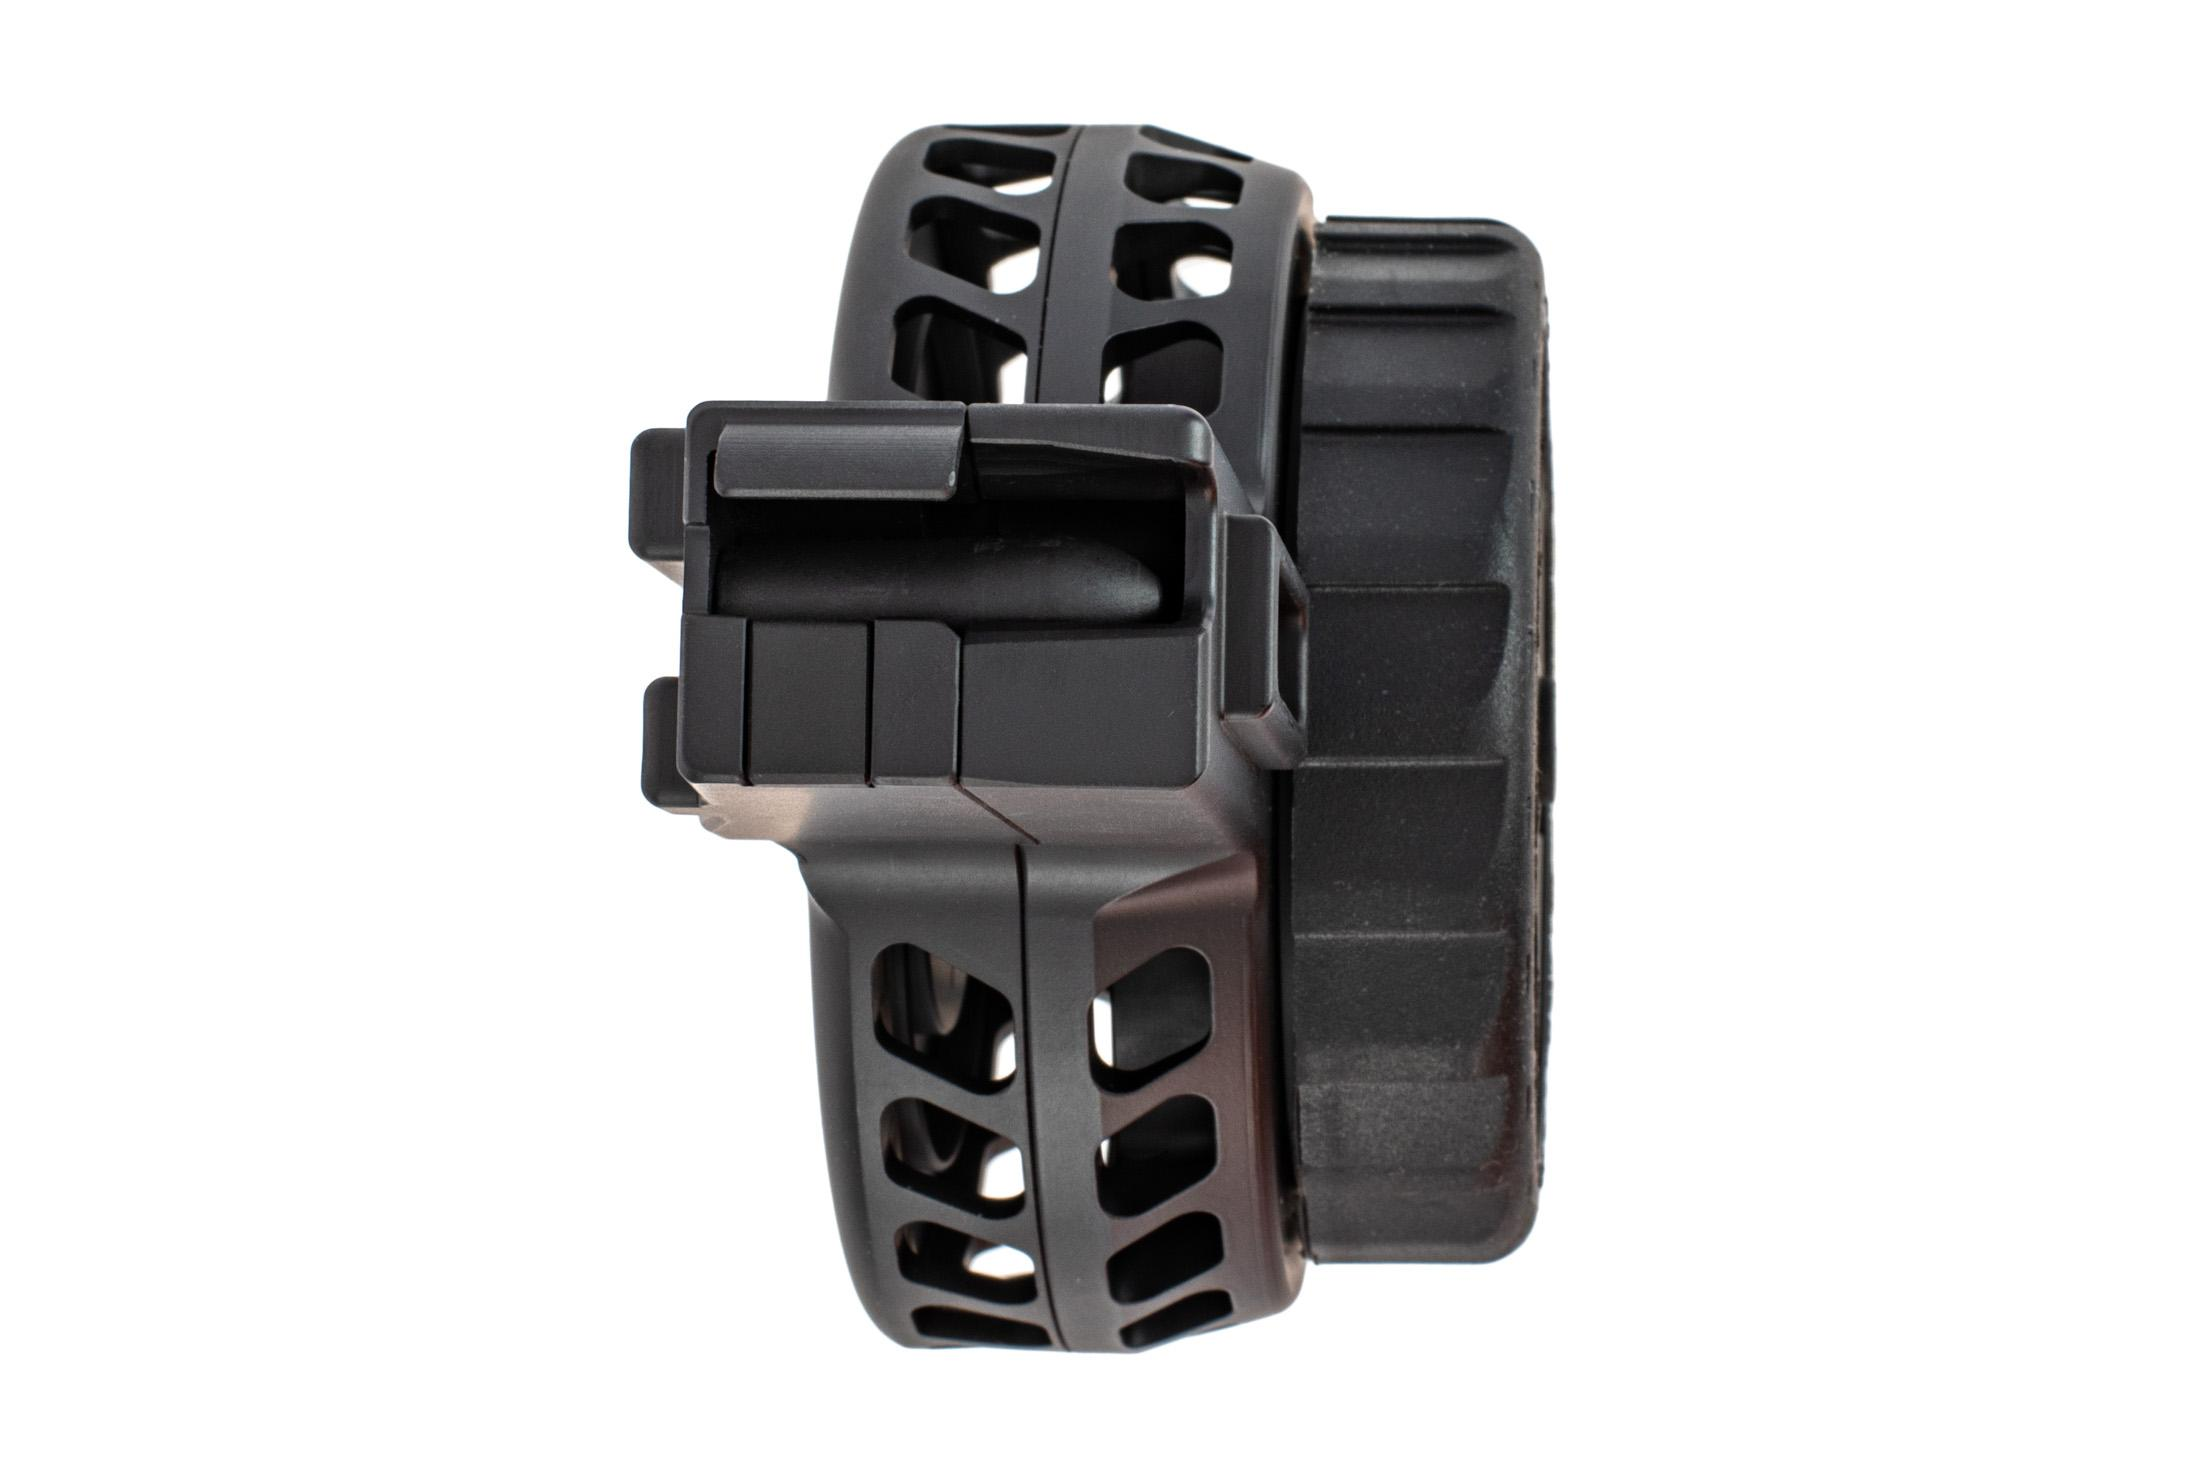 X Products 50 round CZ Scorpion skeletonized drum magazine has a compact reliable design for 9mm Luger